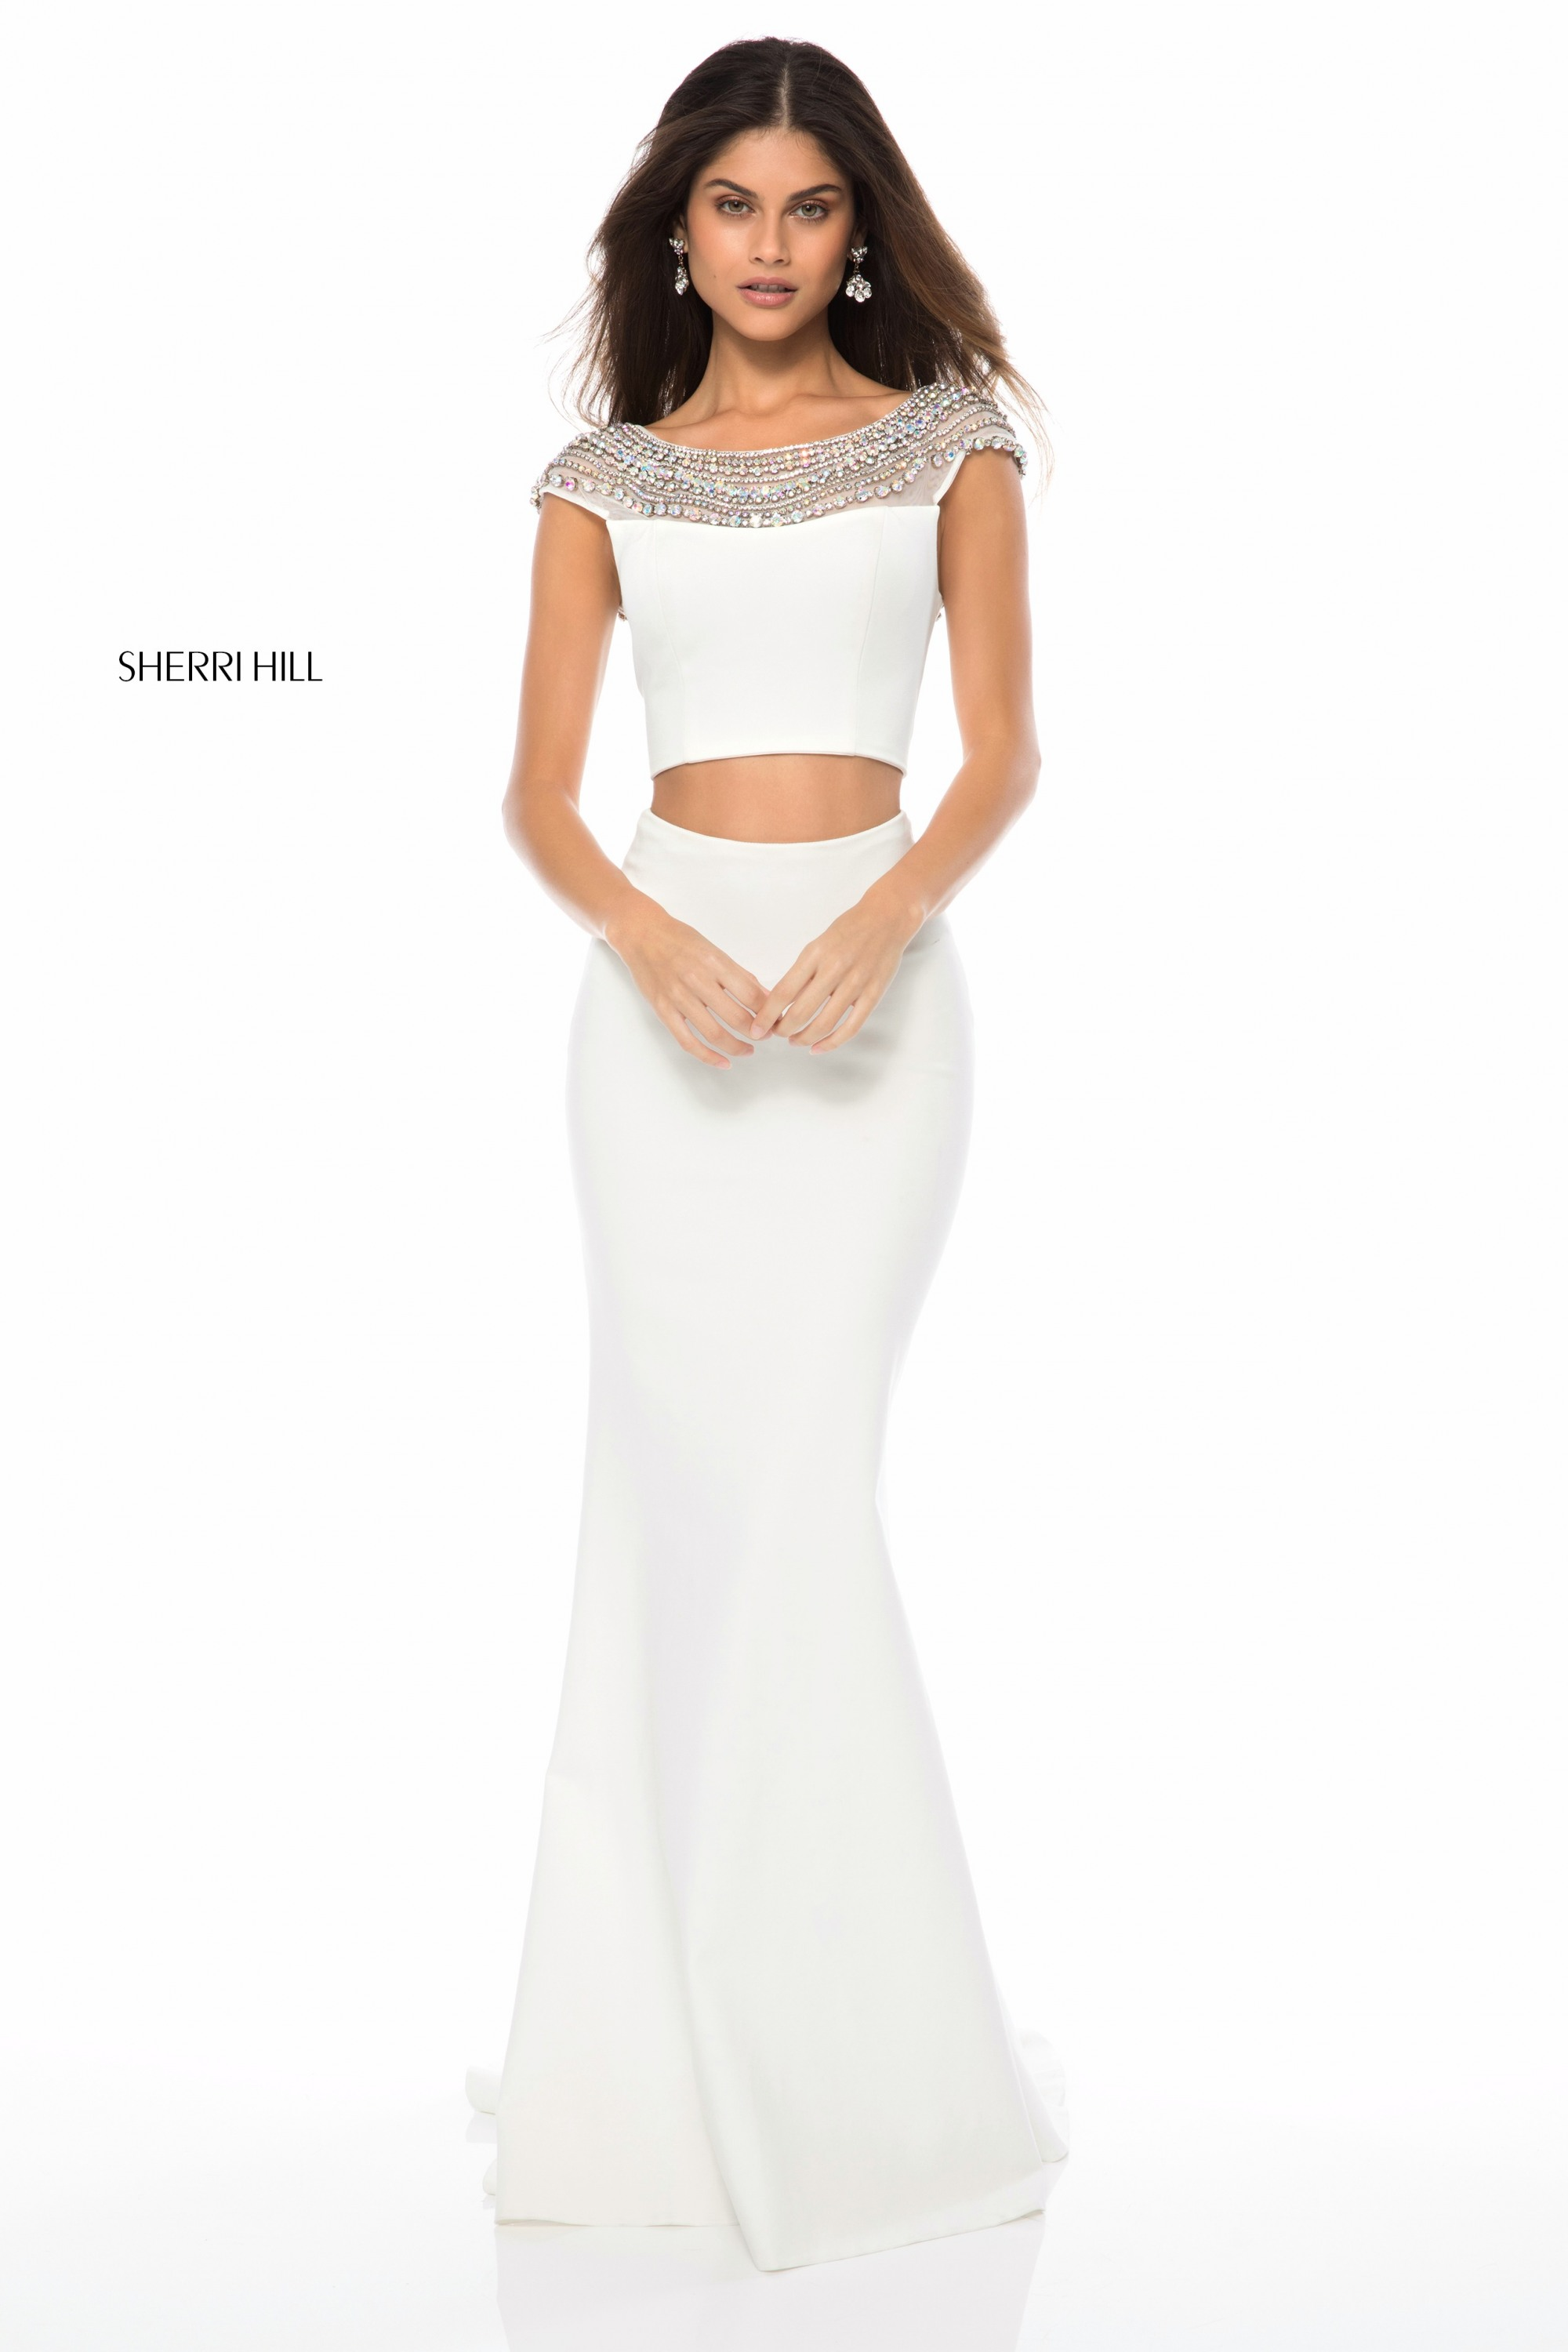 Sherri Hill 51966 Beaded Neckline 2 Piece Formal Dress